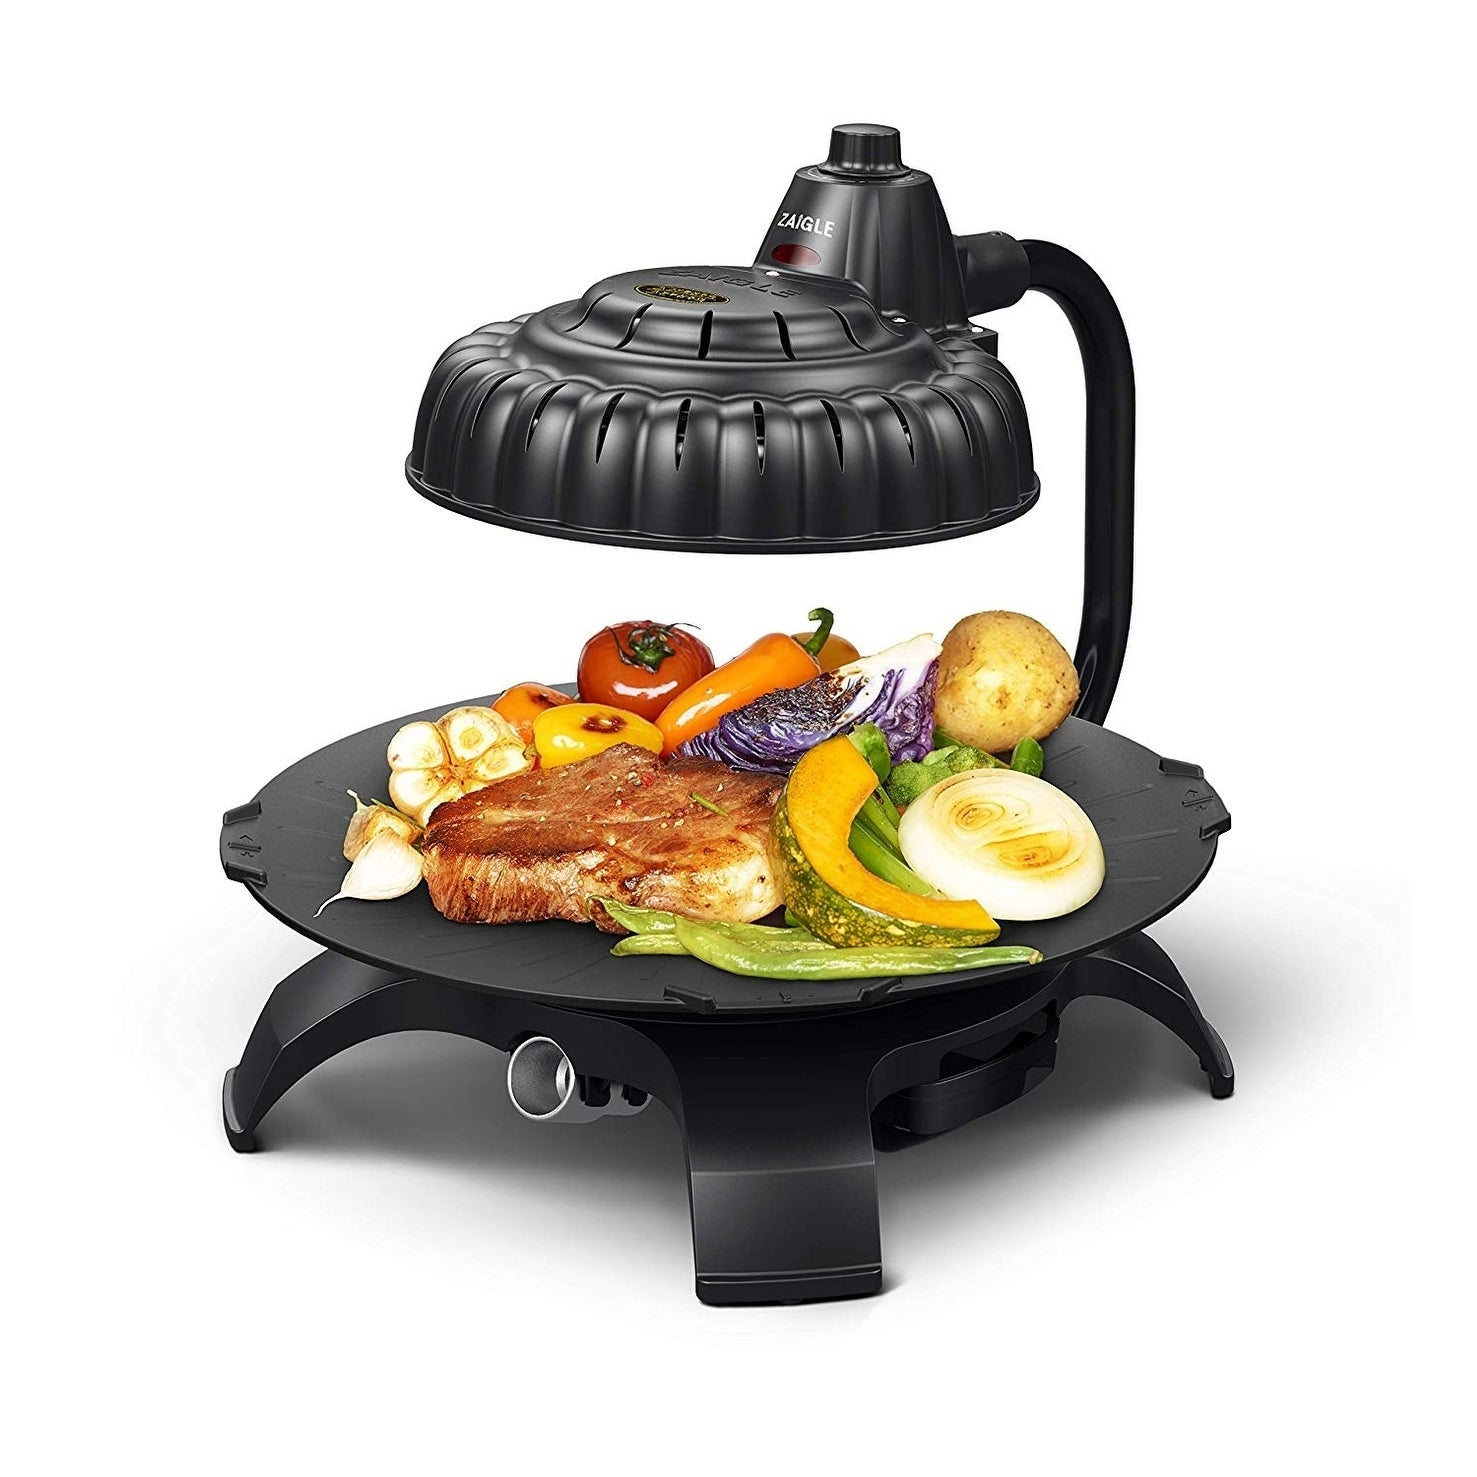 Zaigle ZG-HU375 Handsome Infrared KBBQ Electric Grill, 120v, 3 pans, tongs  included